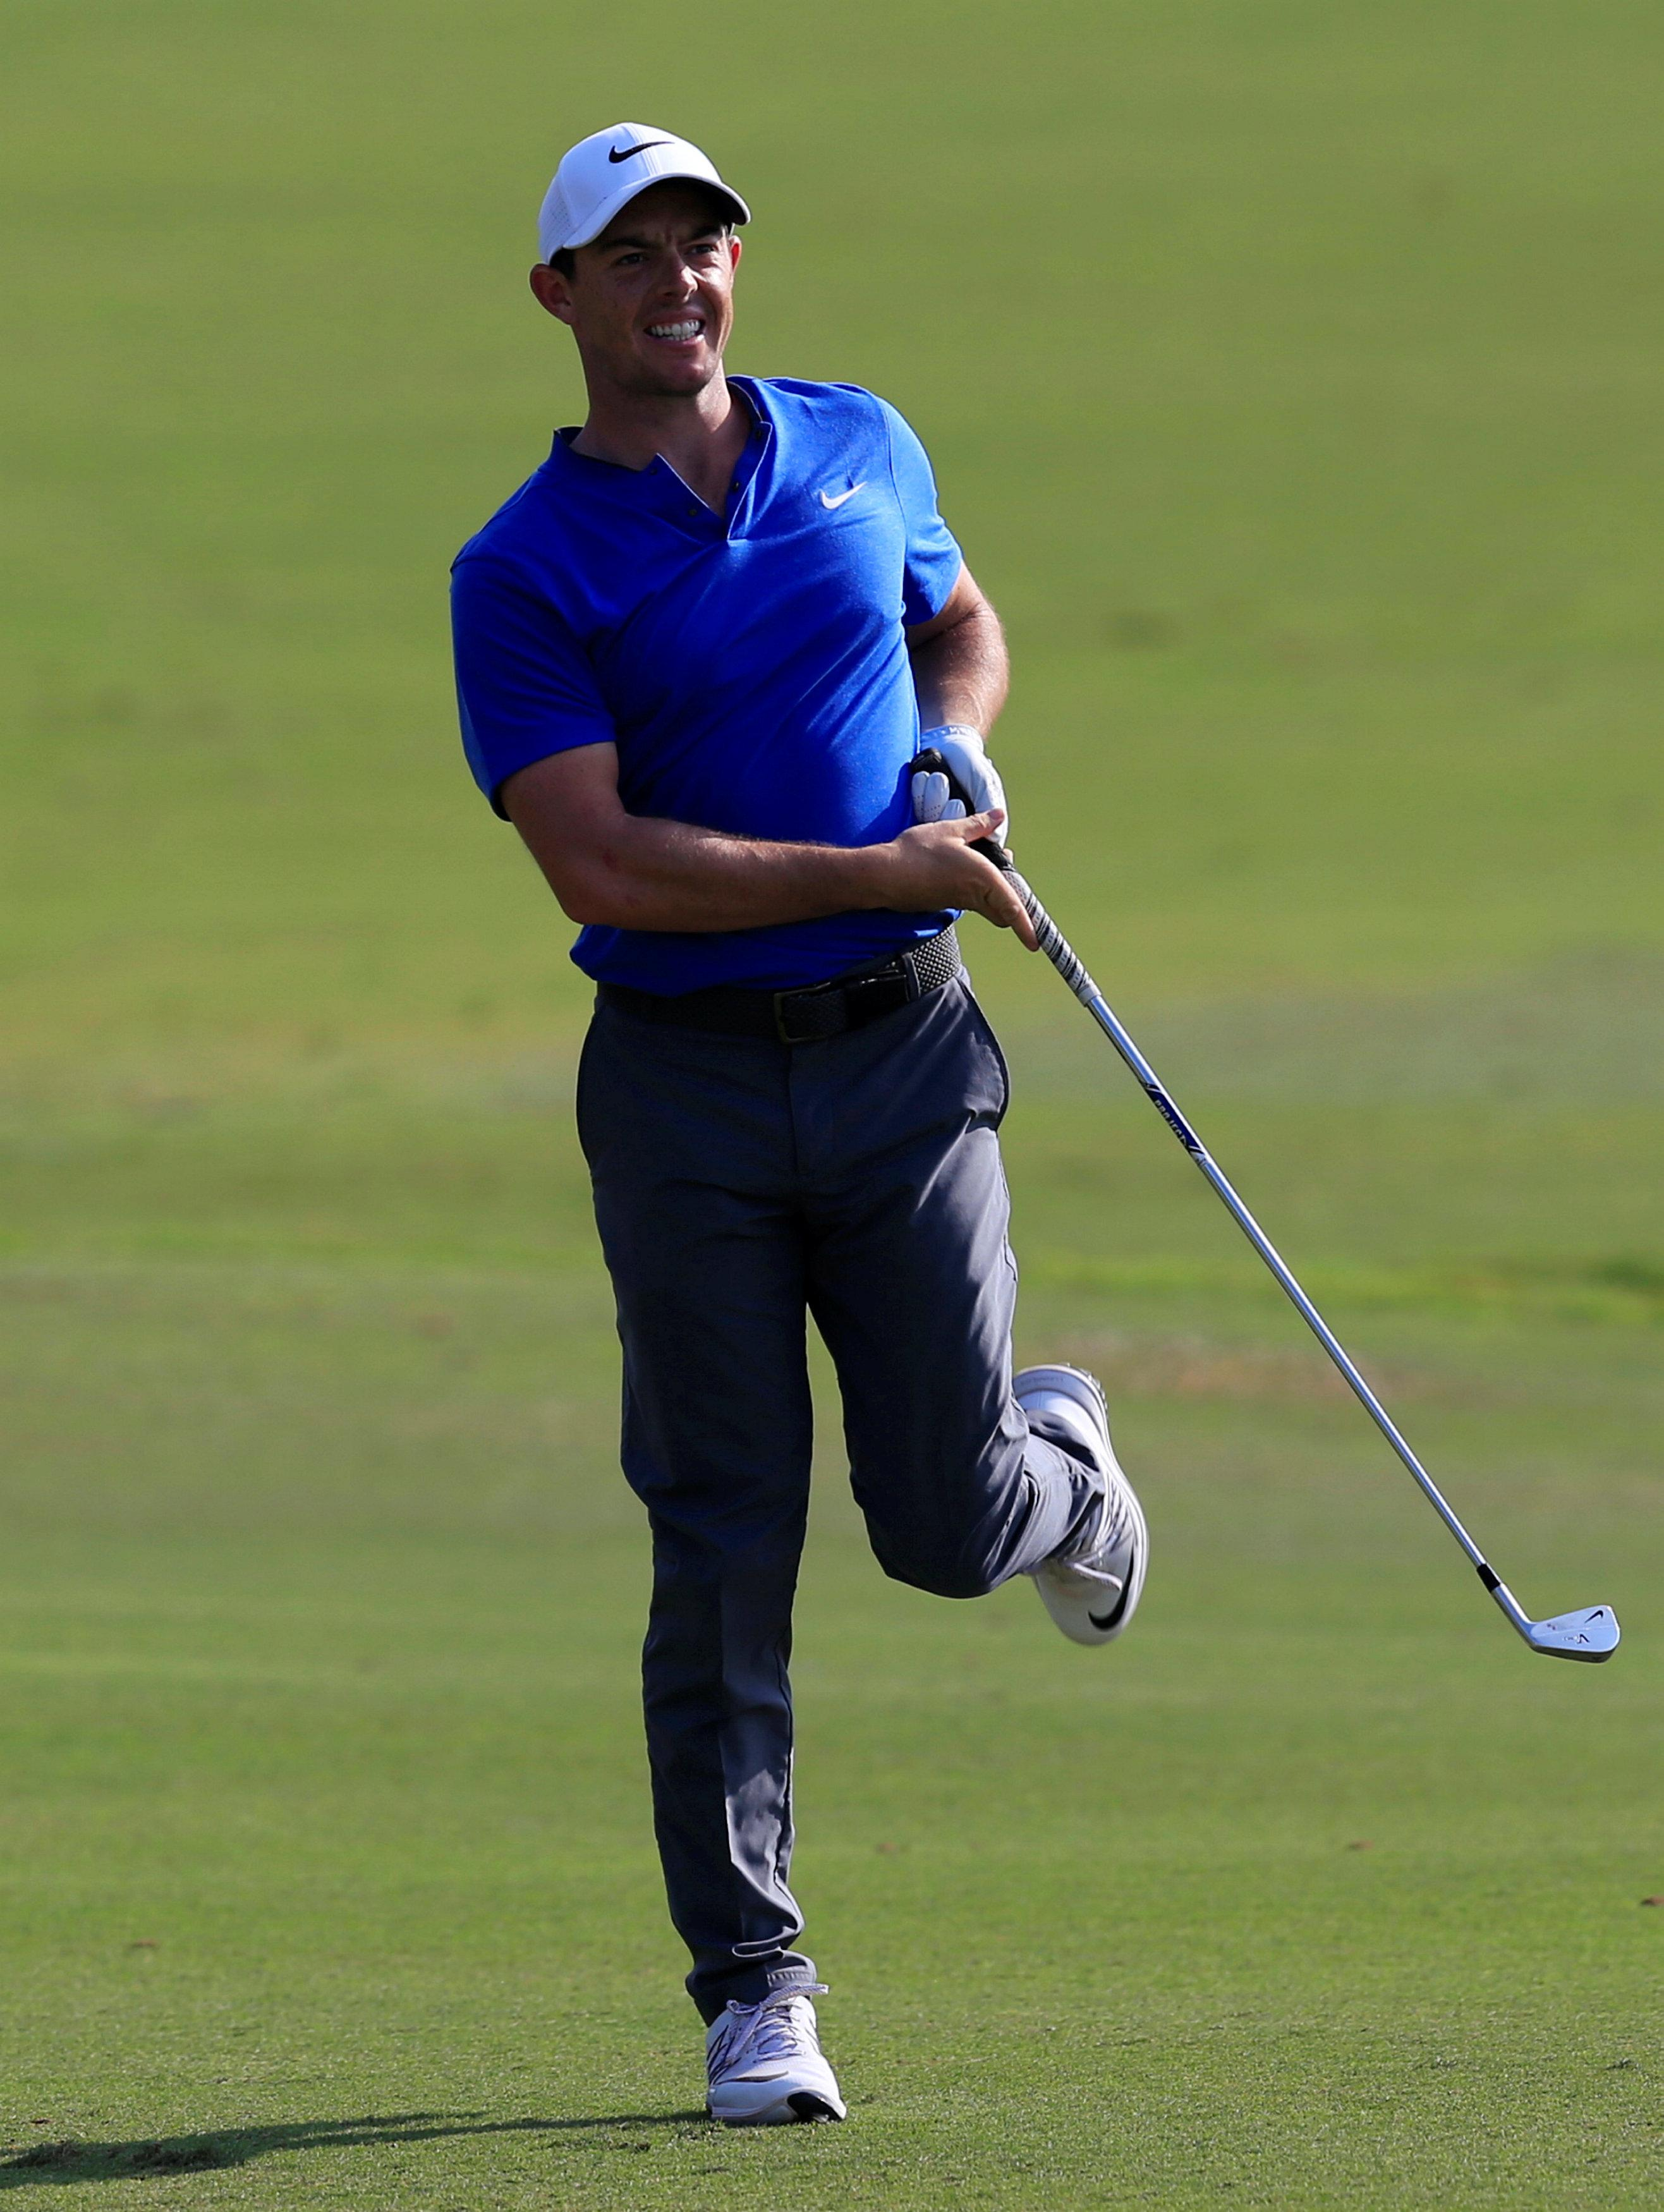 Rory McIlroy McIlroy bemoans back issues Rory McIlroy, Golf